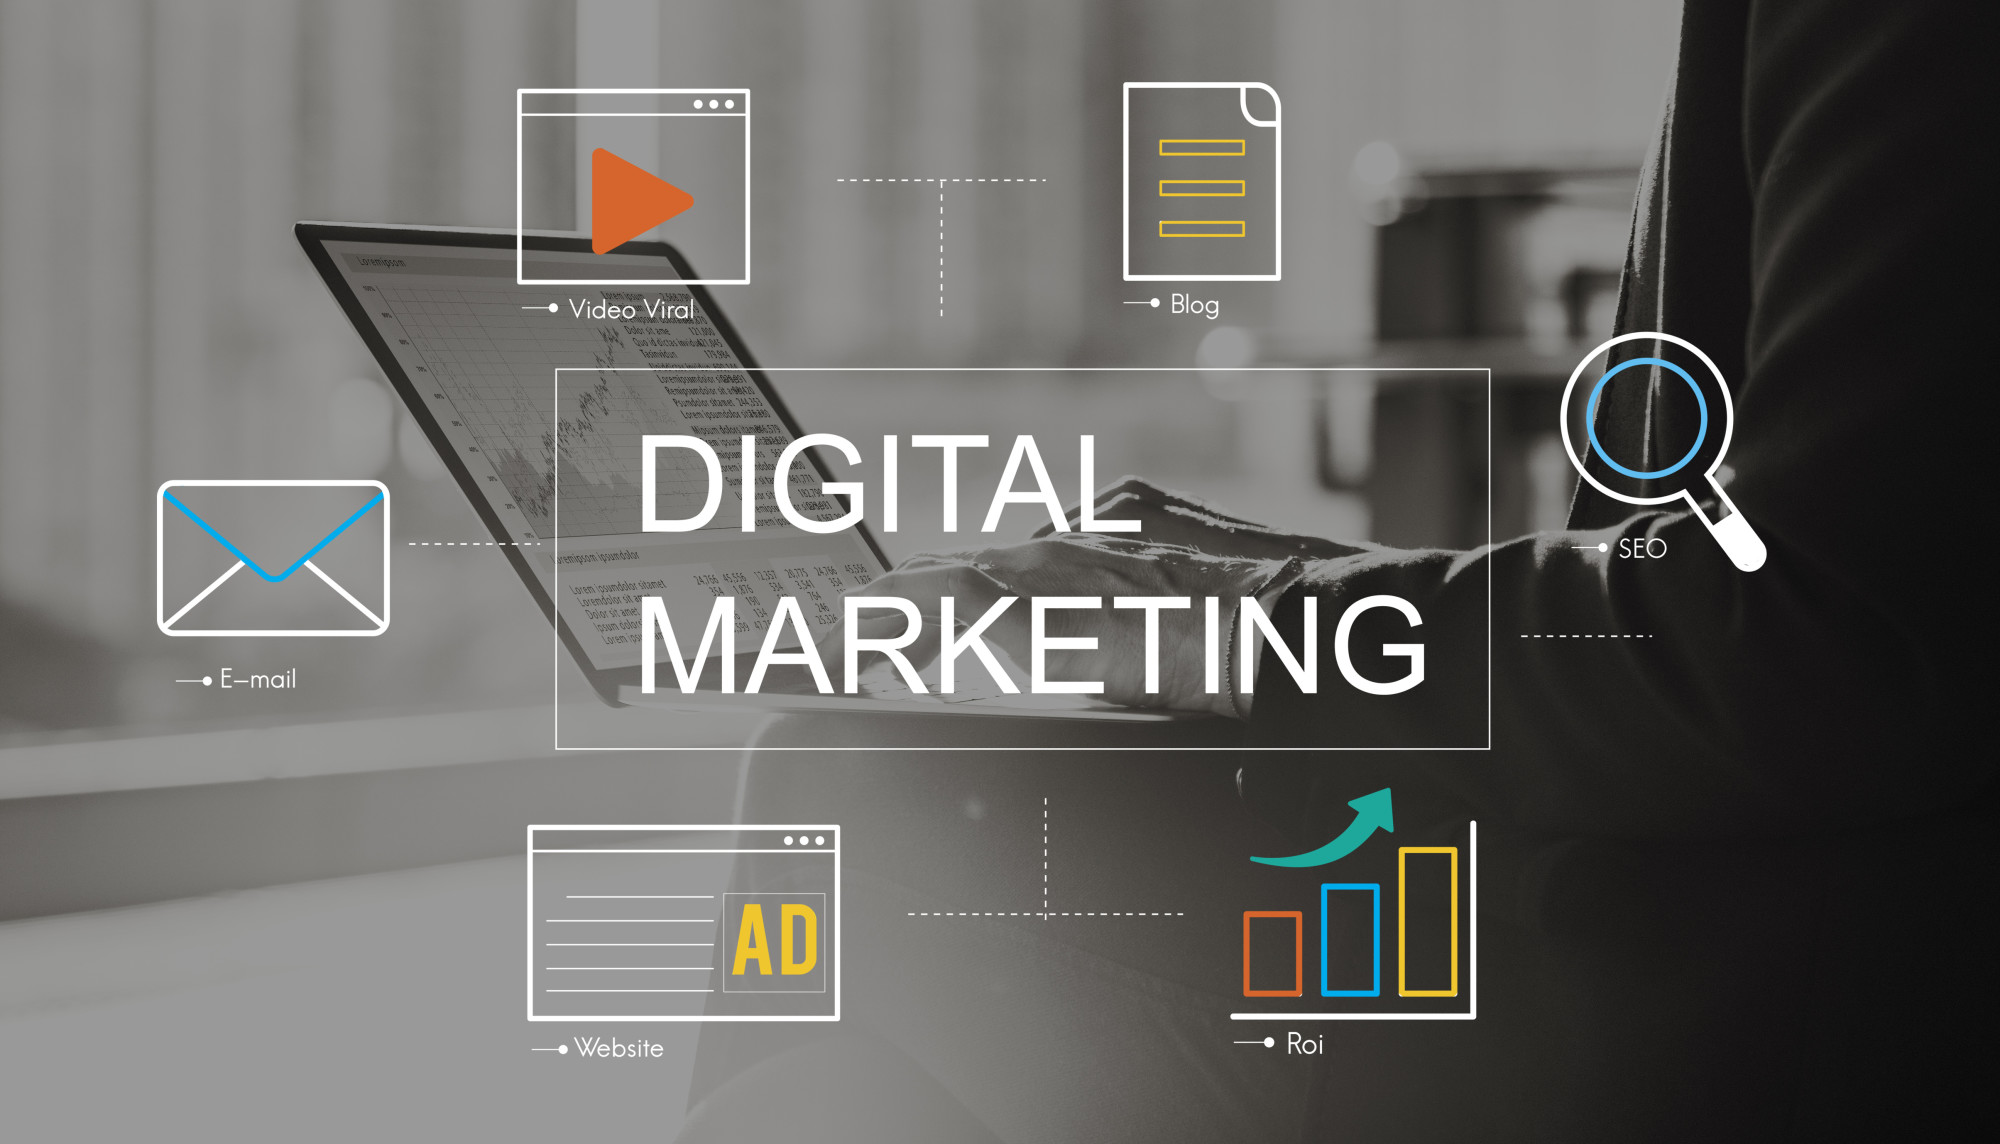 What is Digital Marketing? 6 Services of Digital Marketing in 2020